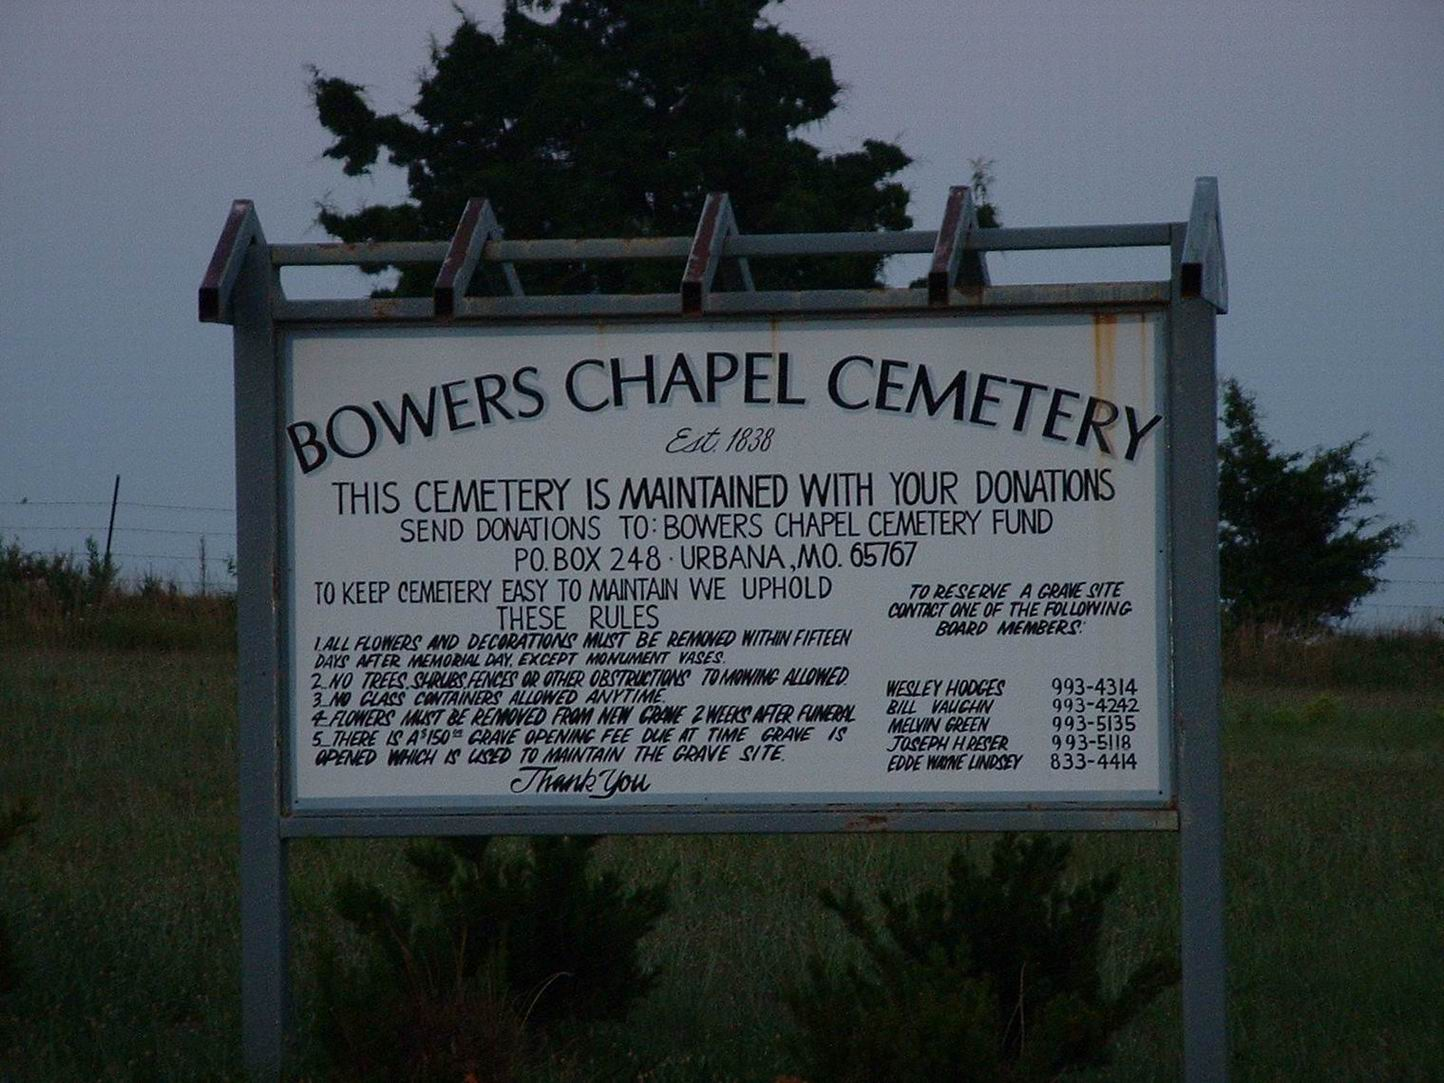 Bowers Chapel Cemetery